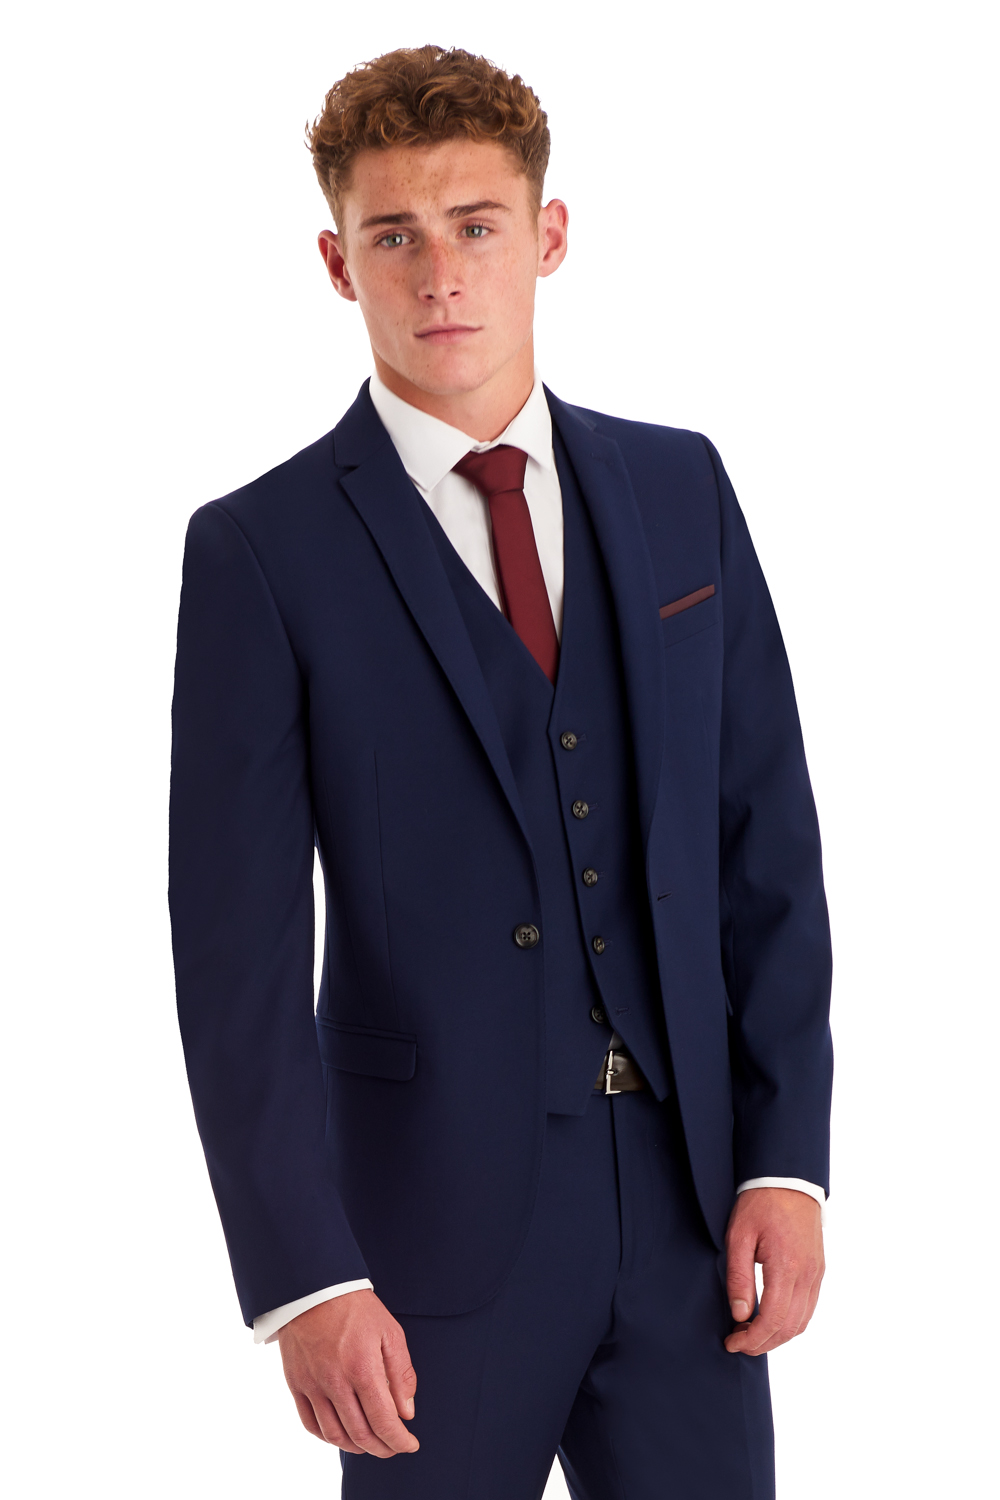 Shop for men's suits online at onelainsex.ml Browse the latest business & designer suit collections & styles for men. Free Shipping Available!